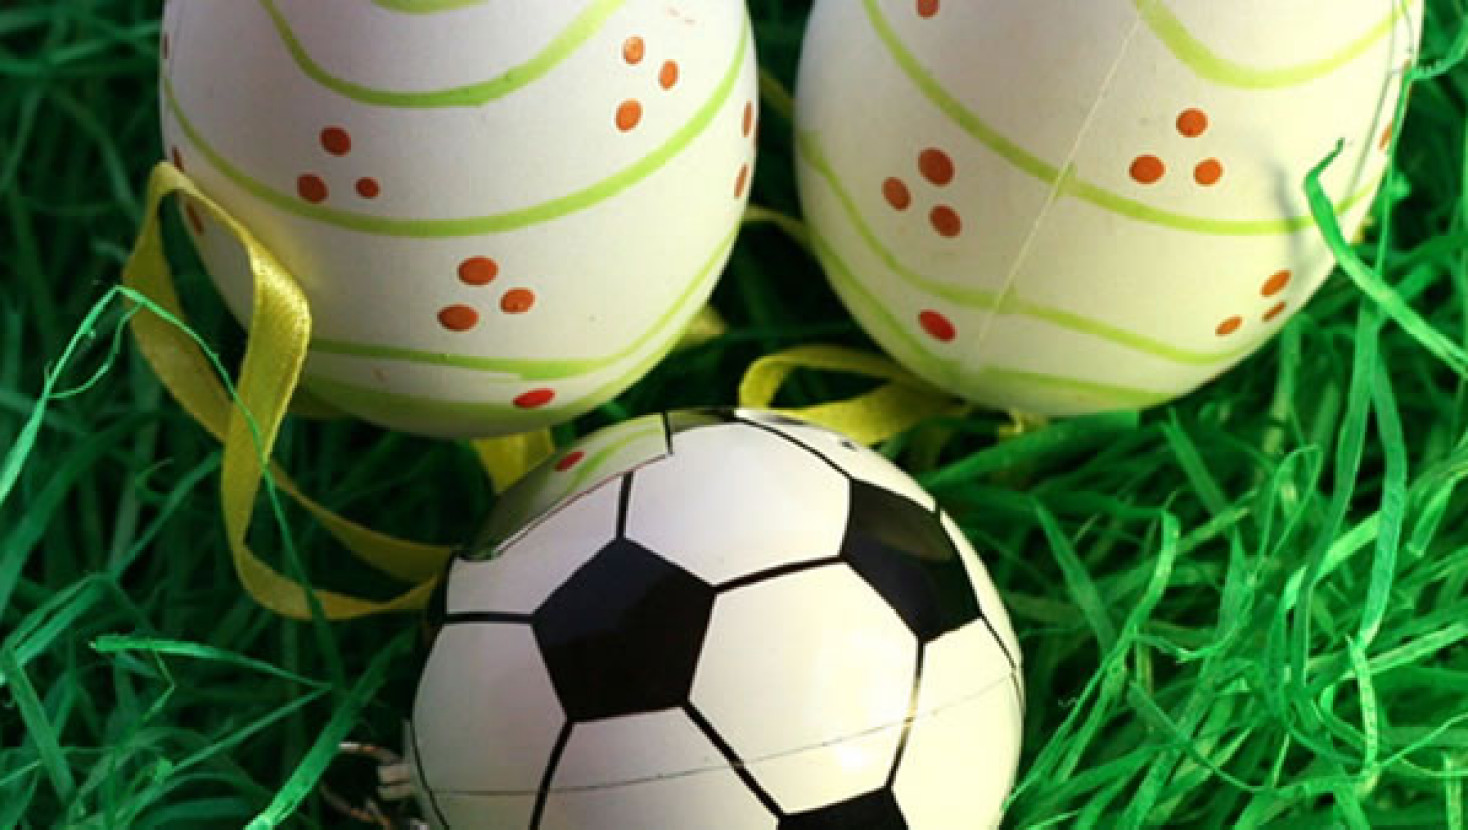 Why You Should Play Footgolf This Easter